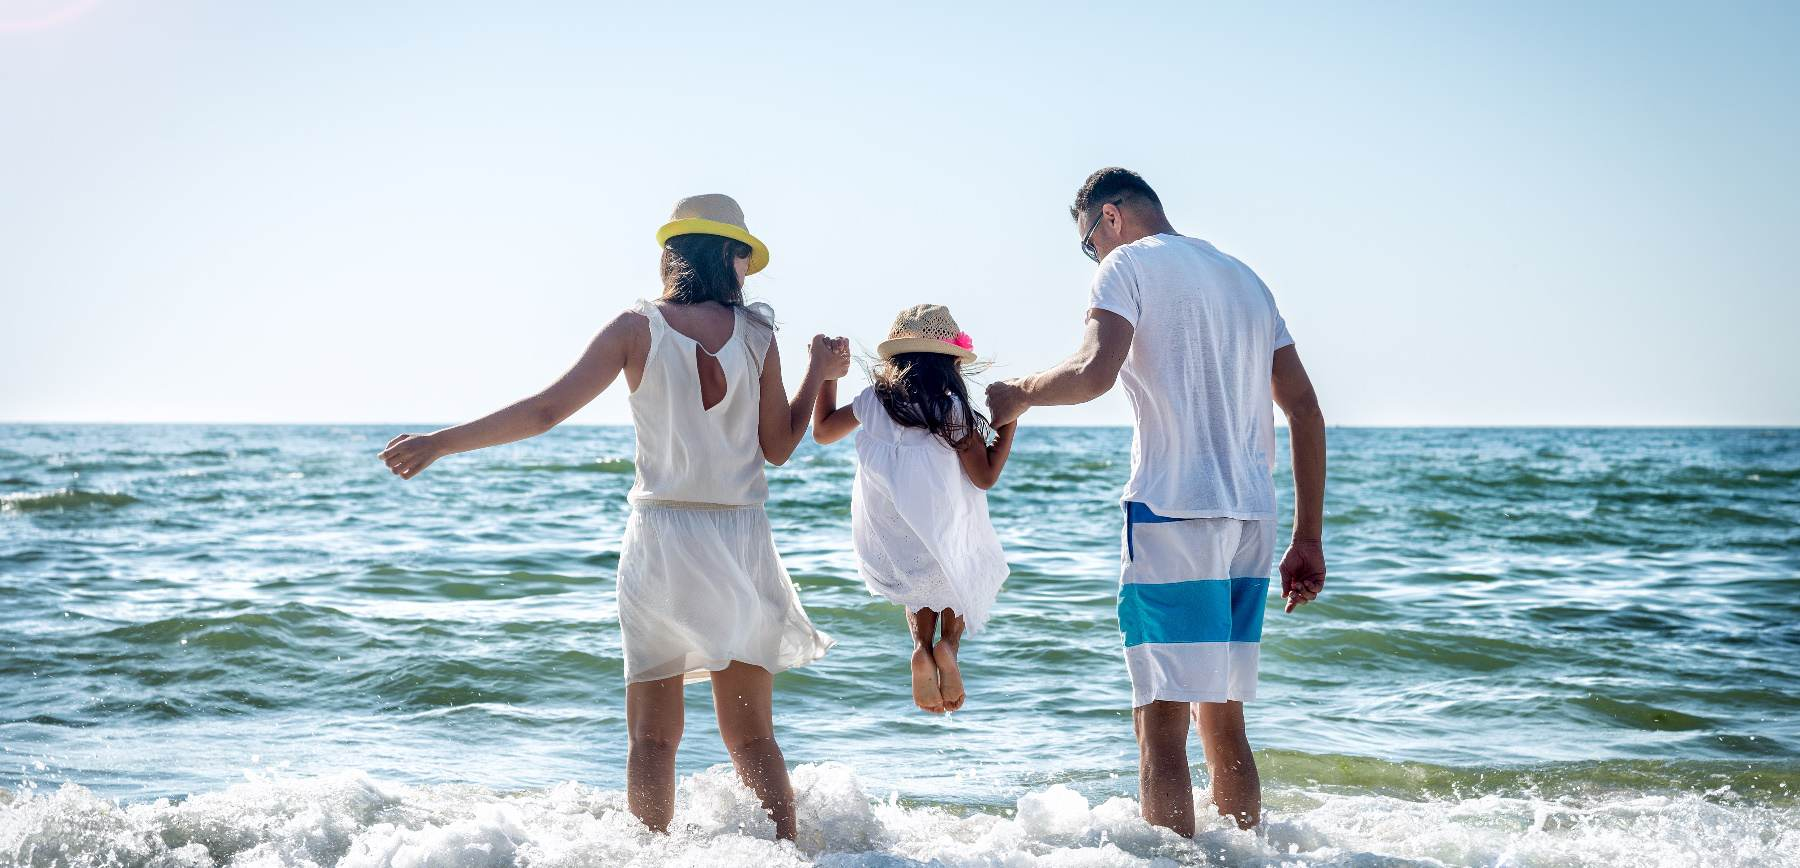 June offer: family package up to 12 years and children free from € 59